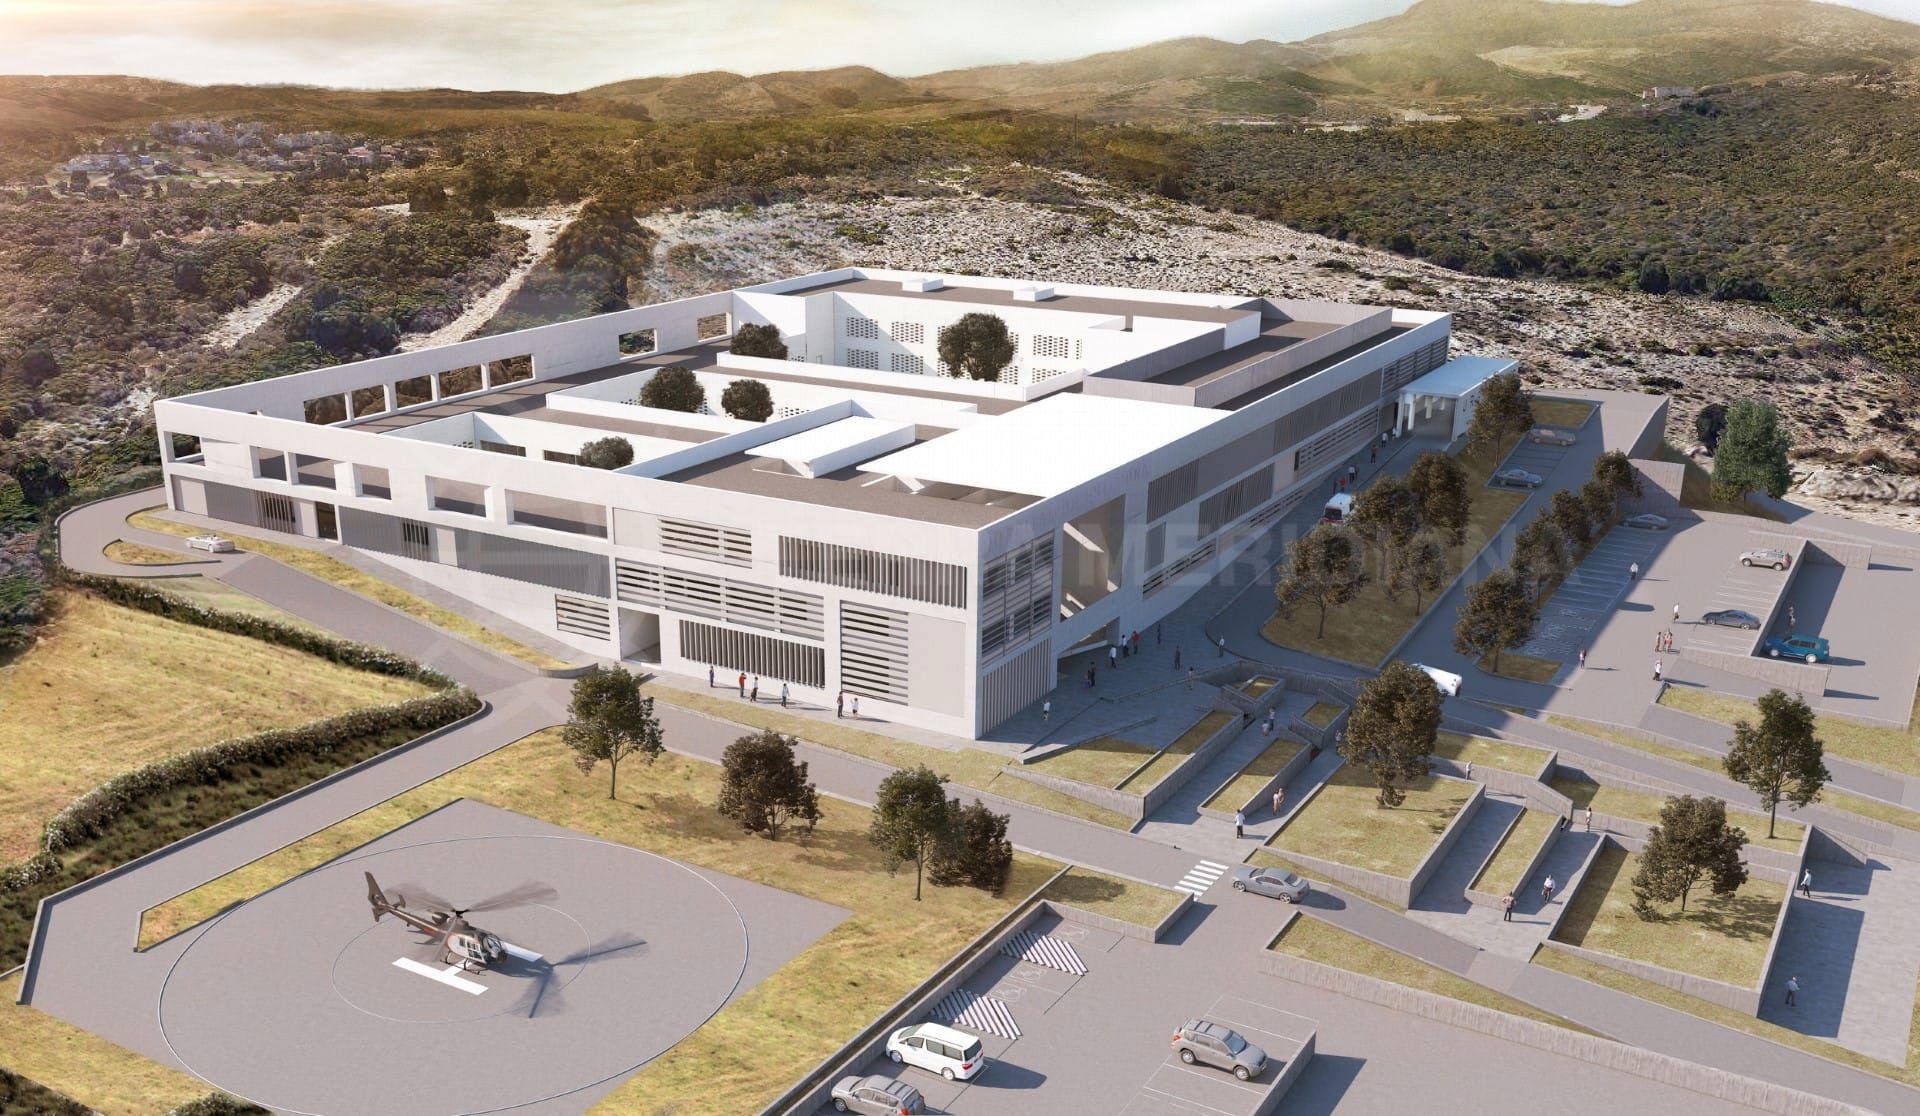 Construction work on new Estepona hospital completed in December